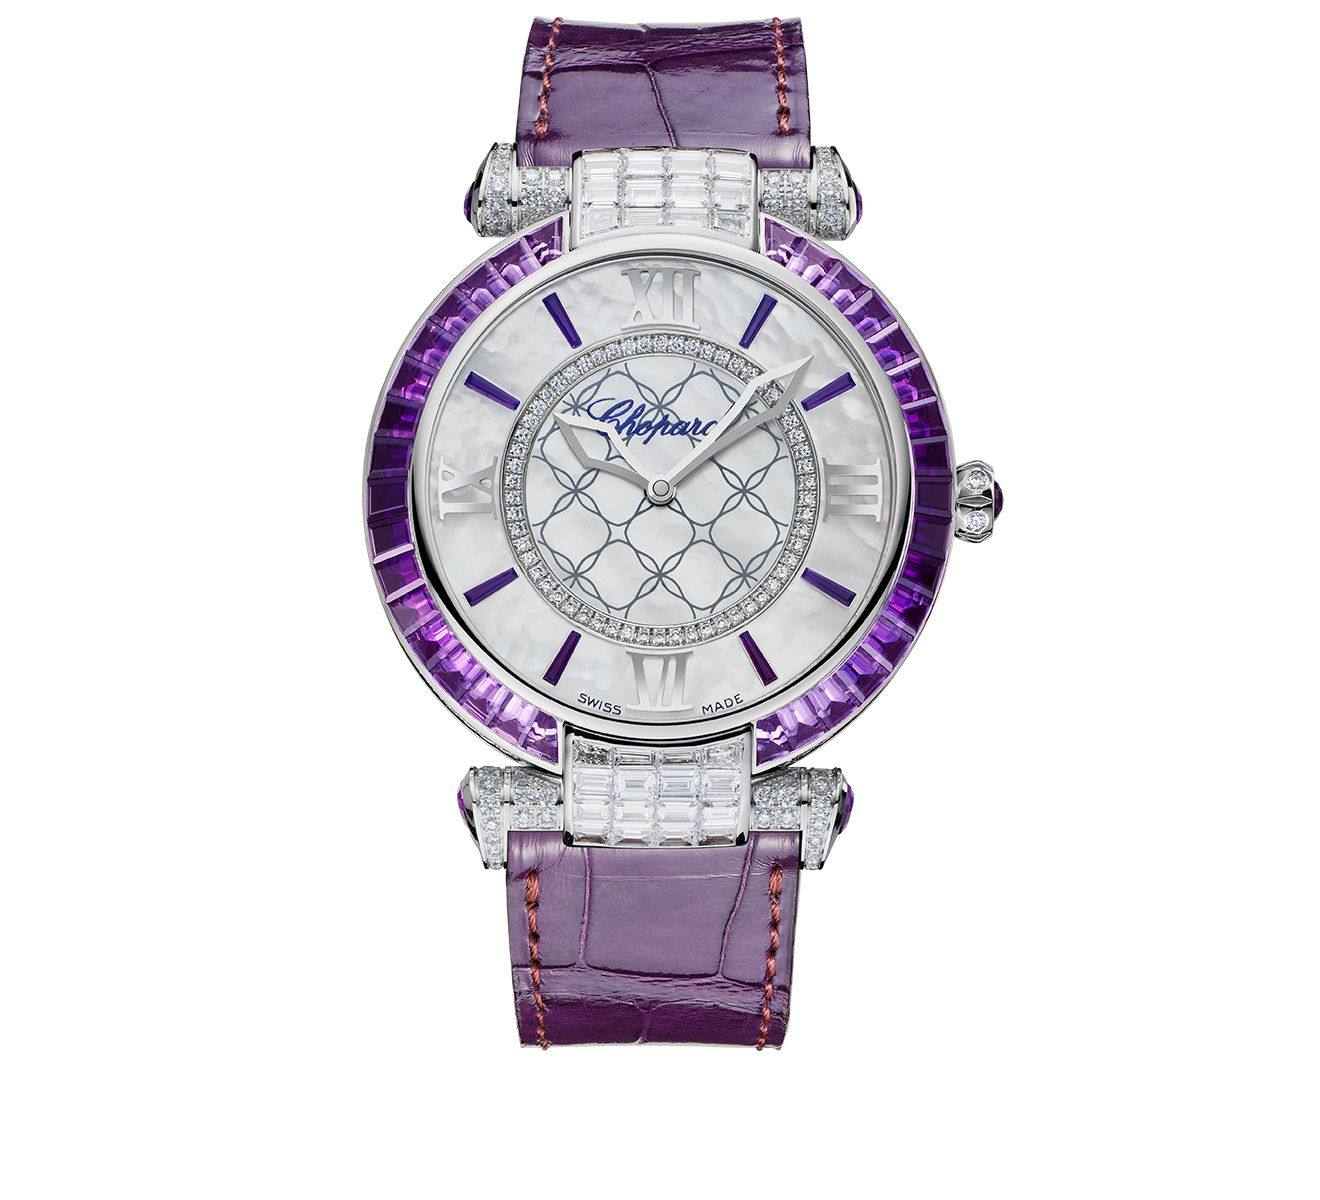 Часы Imperiale Joaillerie Amethyst Chopard Imperiale 384239-1012 - фото 1 – Mercury